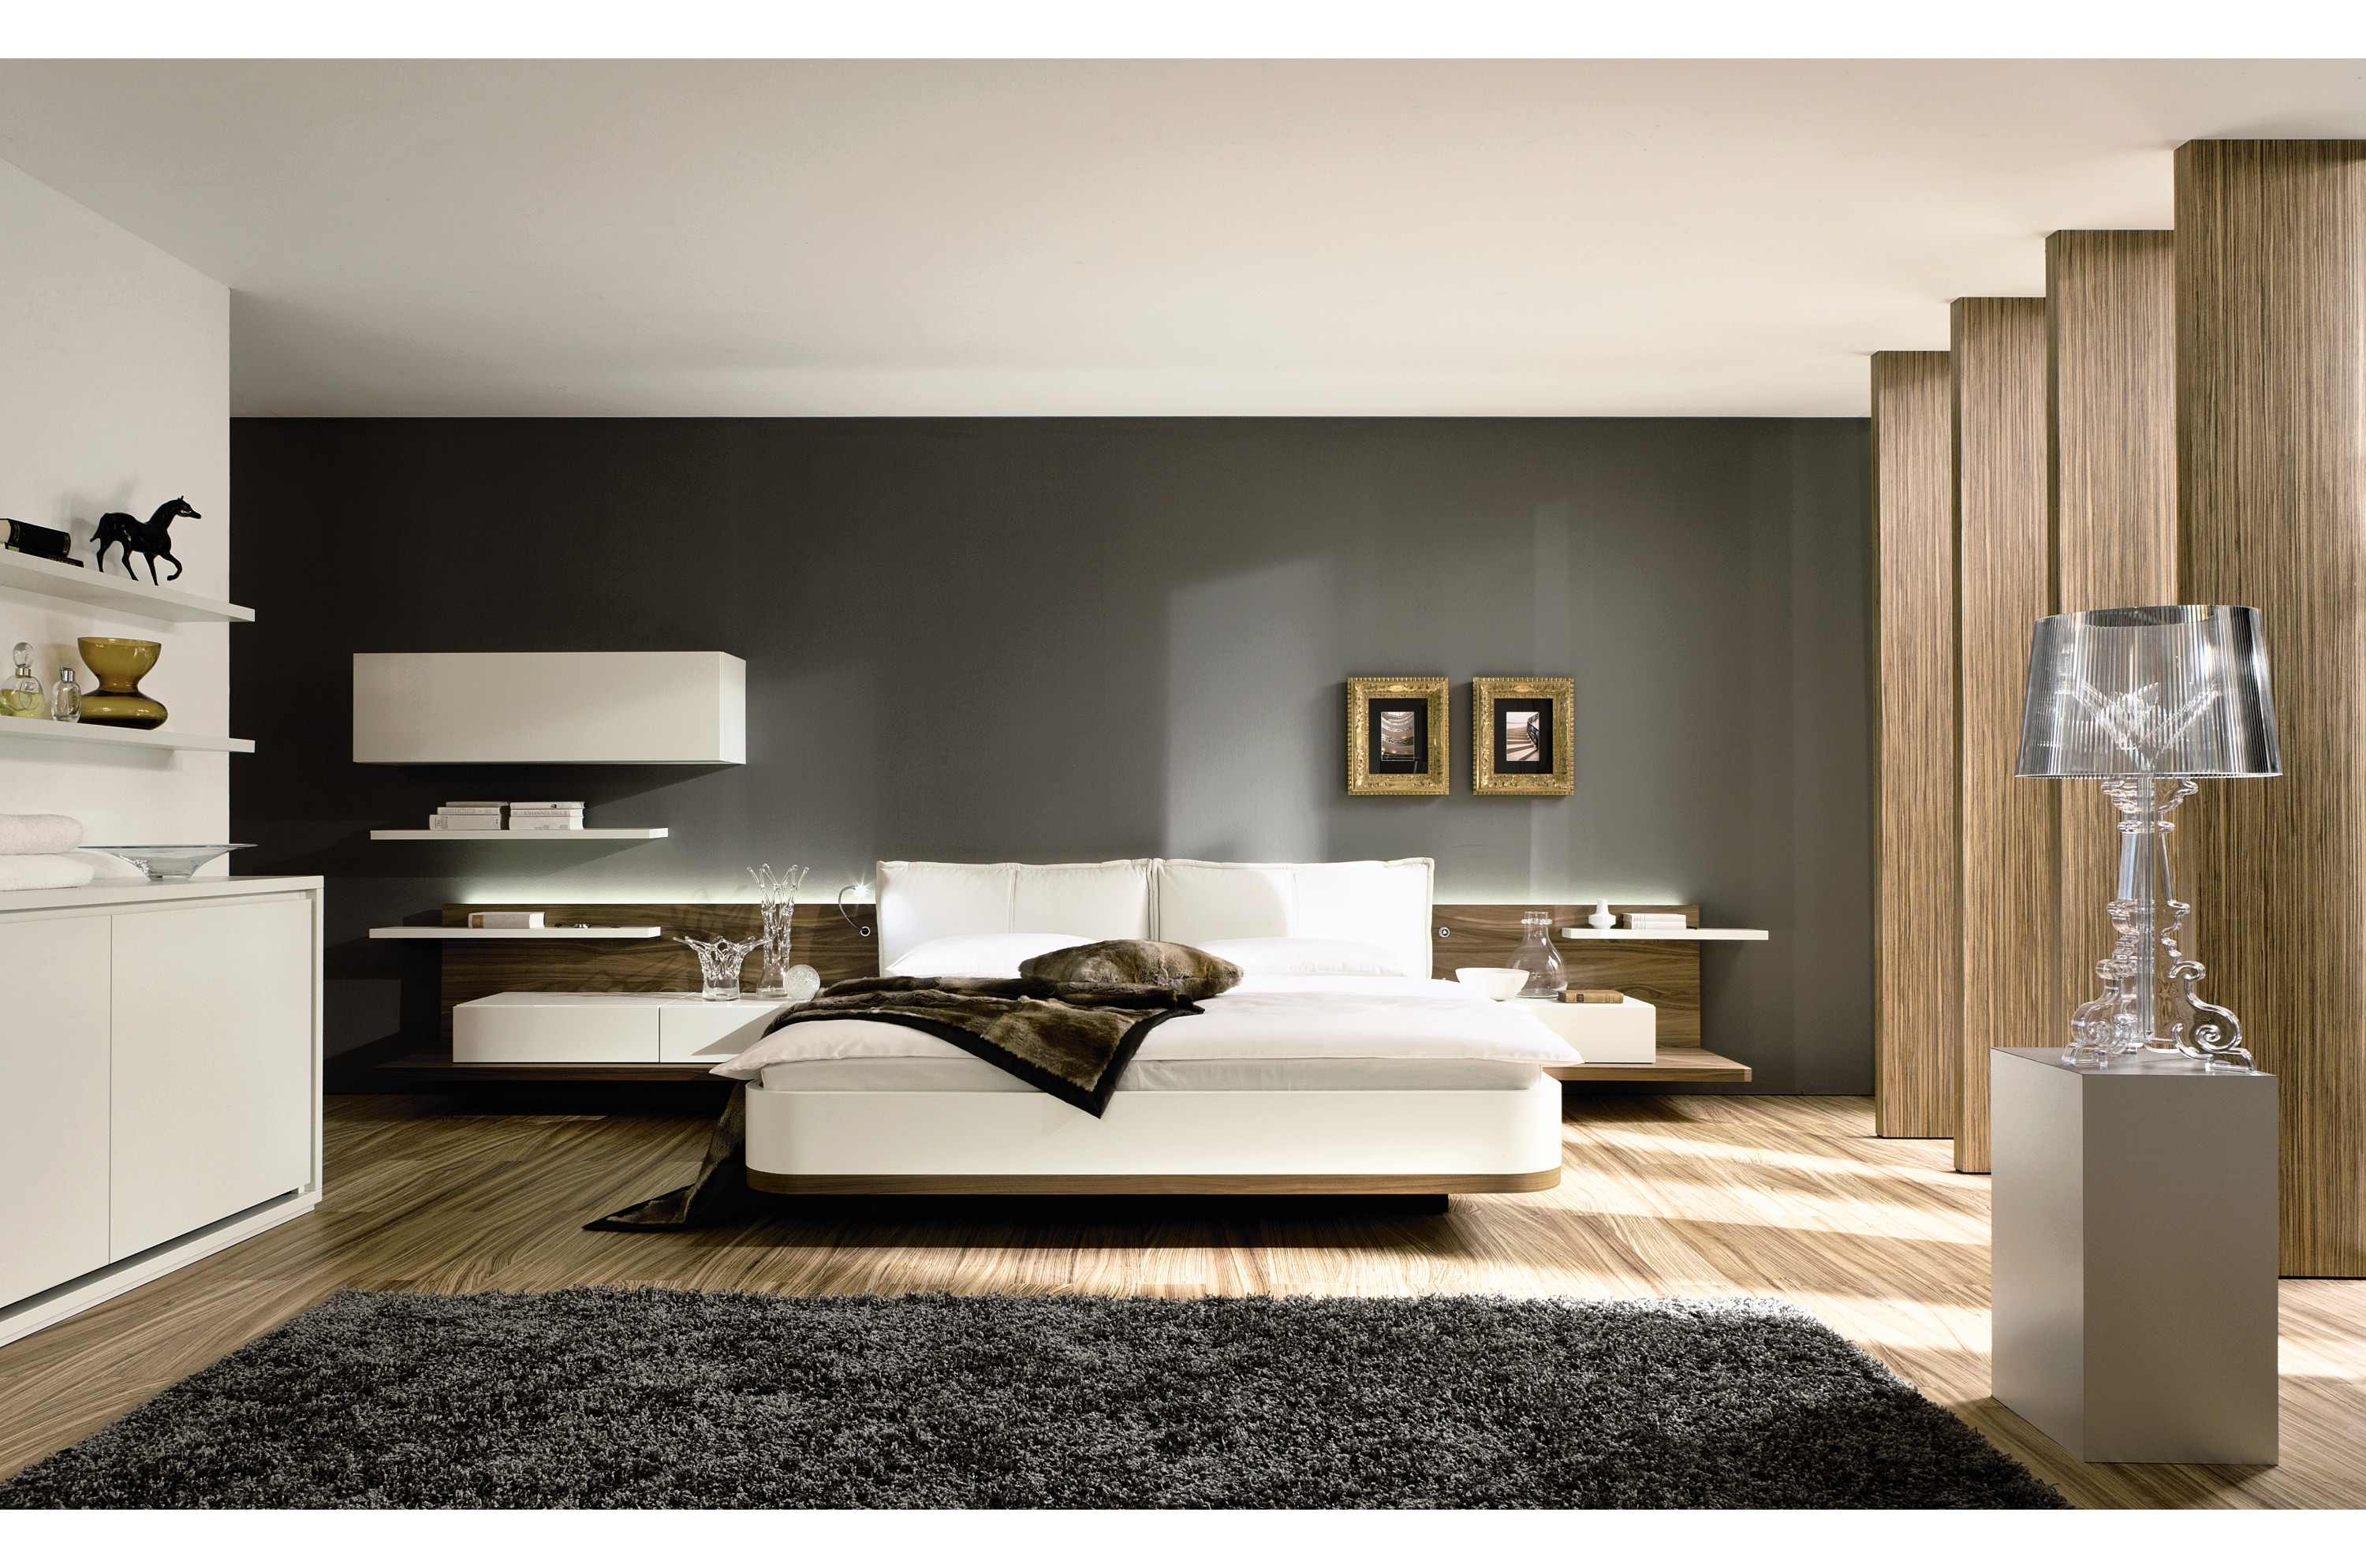 Impressive Modern Bedroom Design Ideas 3000 x 1988 · 1267 kB · jpeg